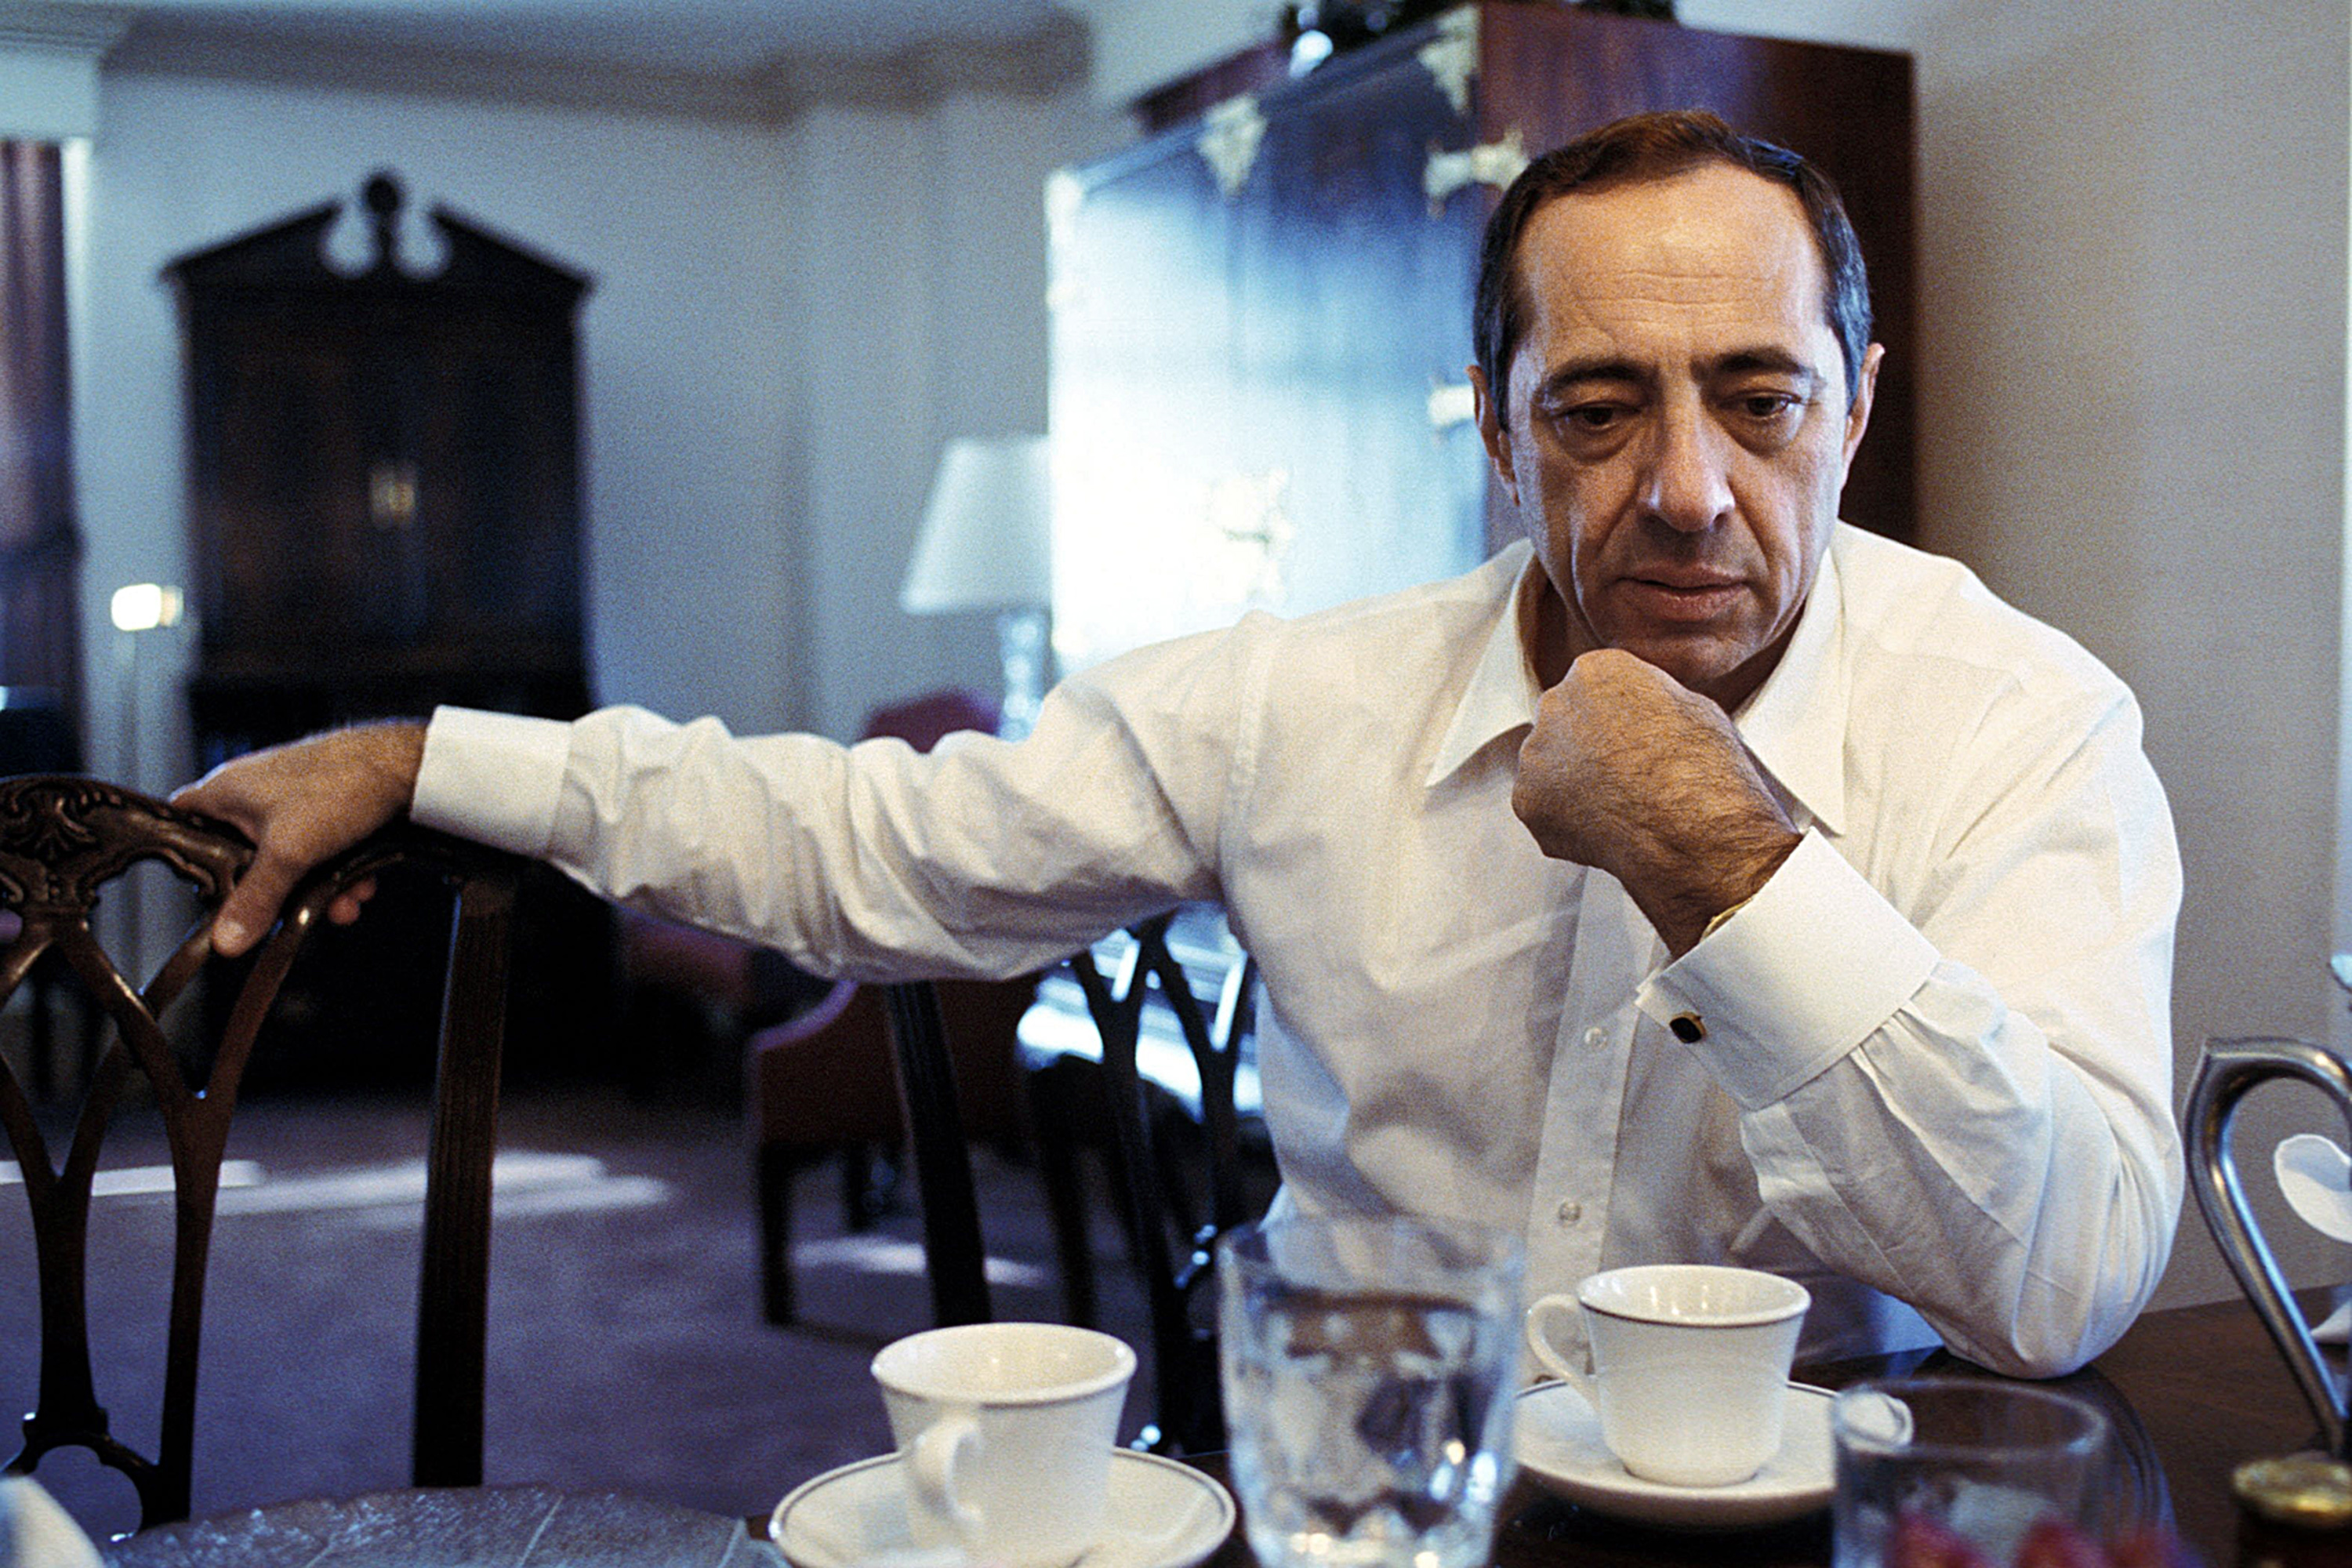 Mario Cuomo, who died Jan. 1 at 82, at a New York hotel in 1986.